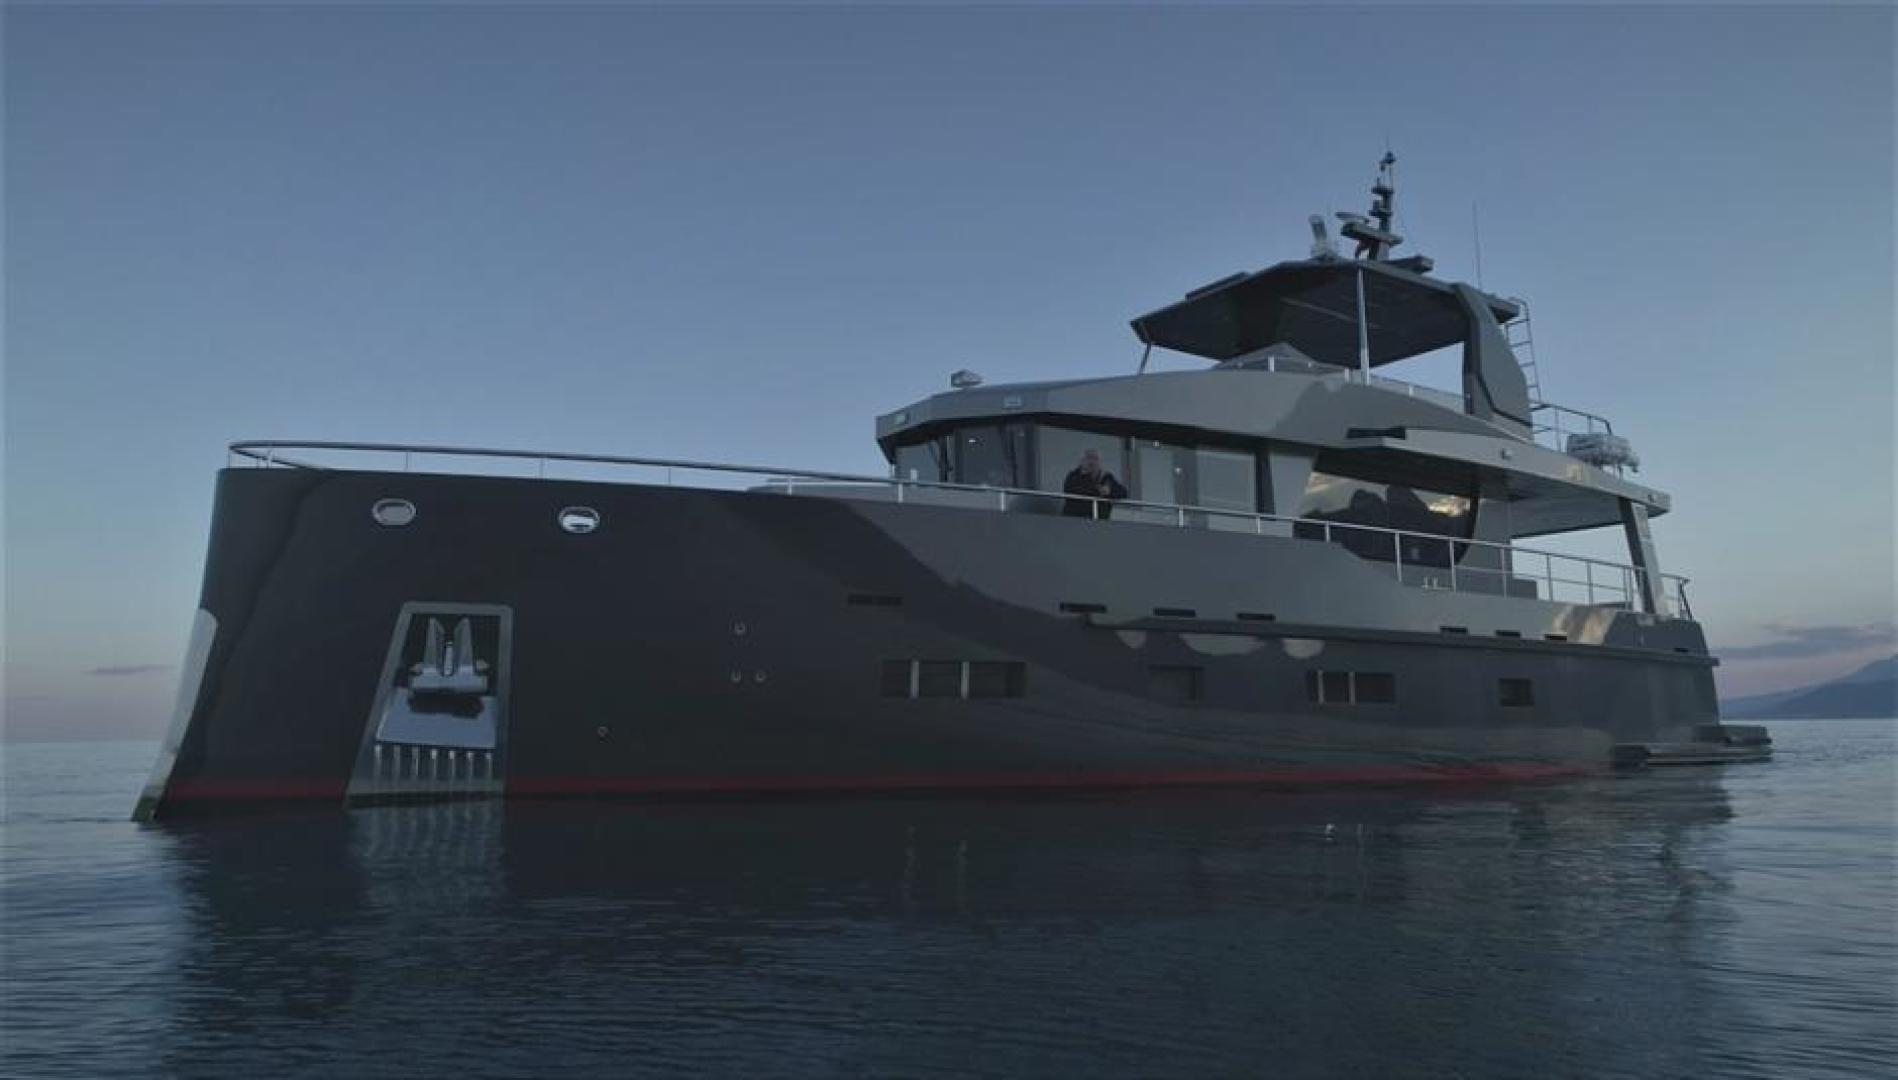 Bering-Expedition Yacht 2019-Expedition Yacht Turkey-1405107   Thumbnail